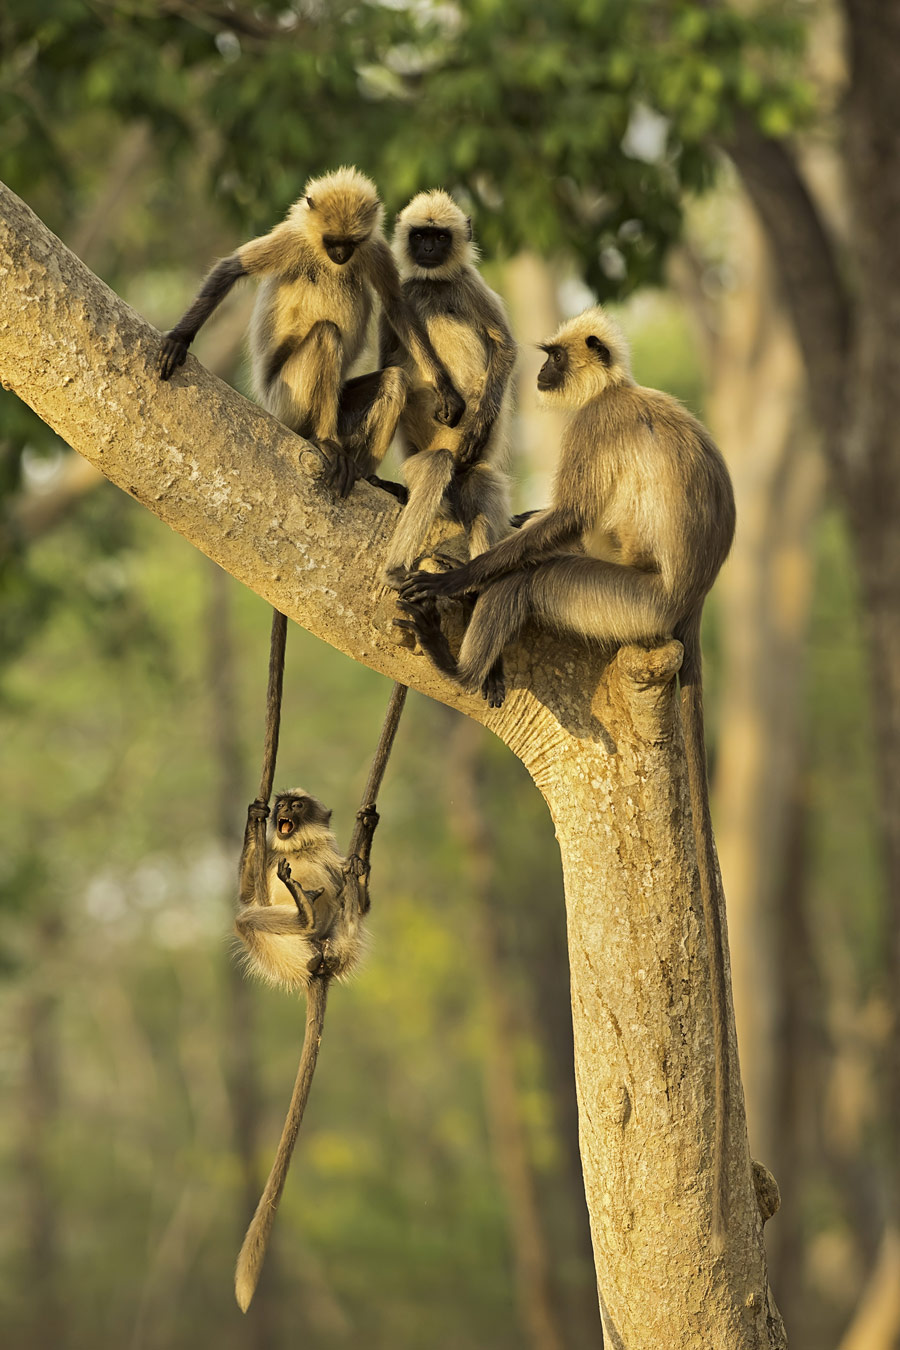 Fun for all ages, © Thomas Vijayan, Oakville, Canada, Highly Honored Wildlife, Nature's Best Photography Asia